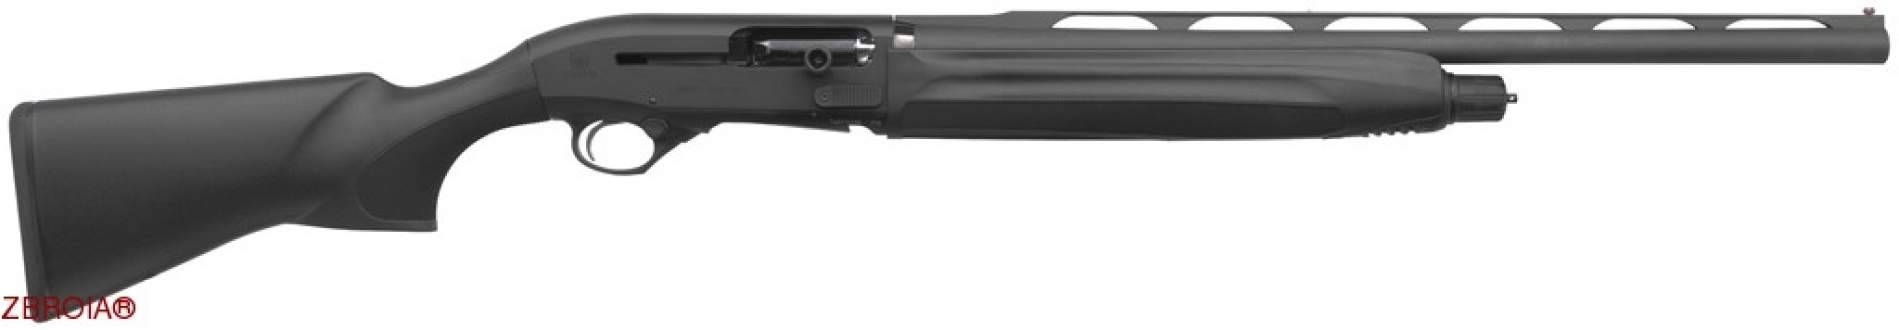 Ружье Beretta 1301 Competition кал. 12/76